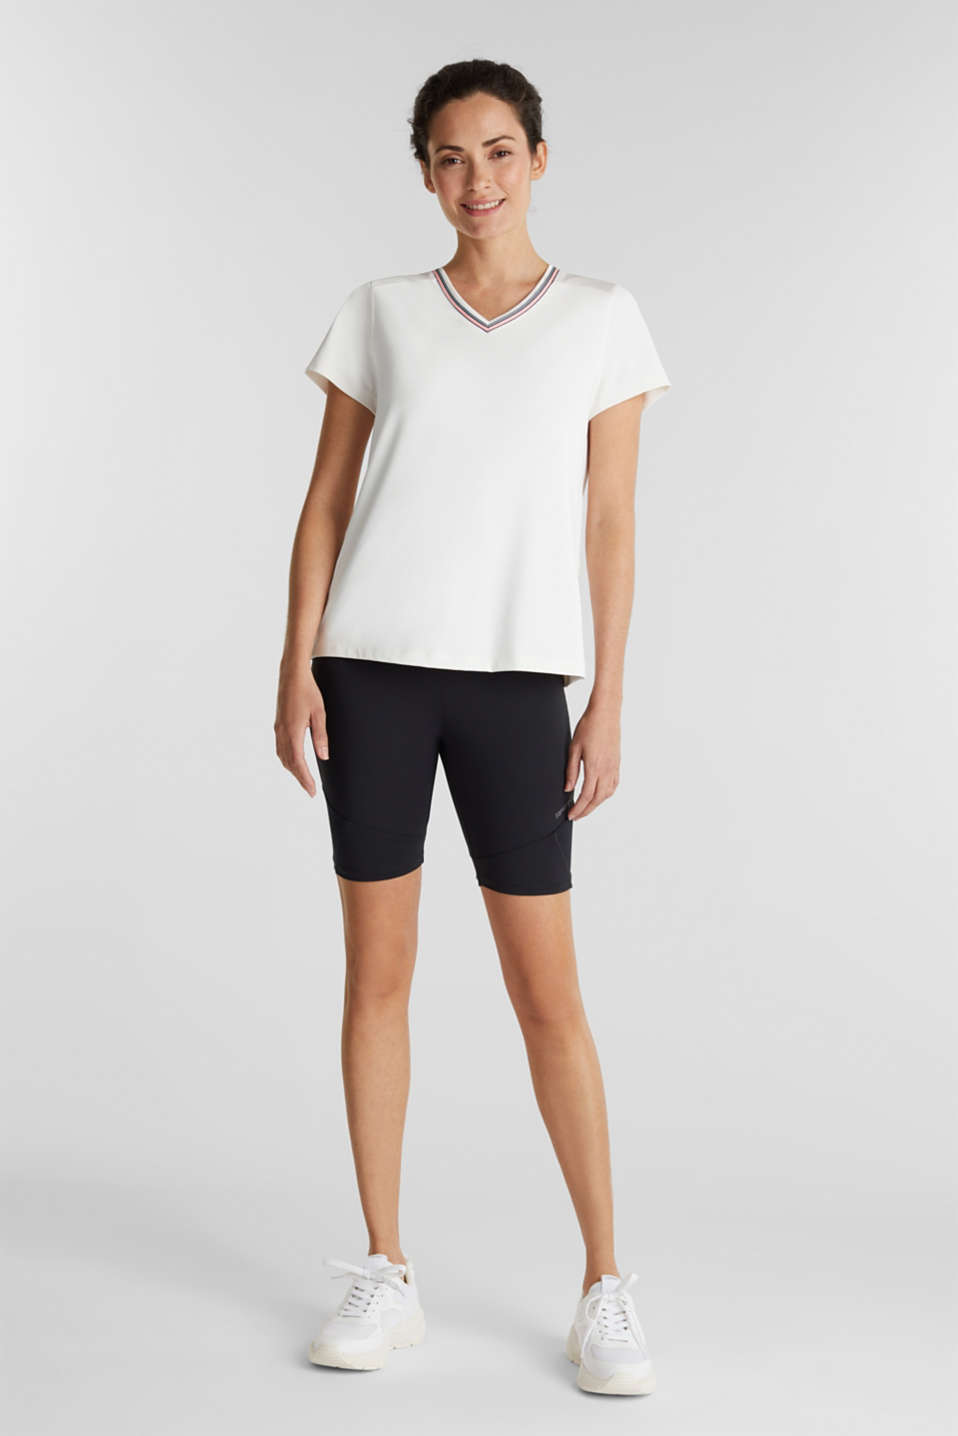 V-neck T-shirt with open-work pattern, E-DRY, OFF WHITE, detail image number 1